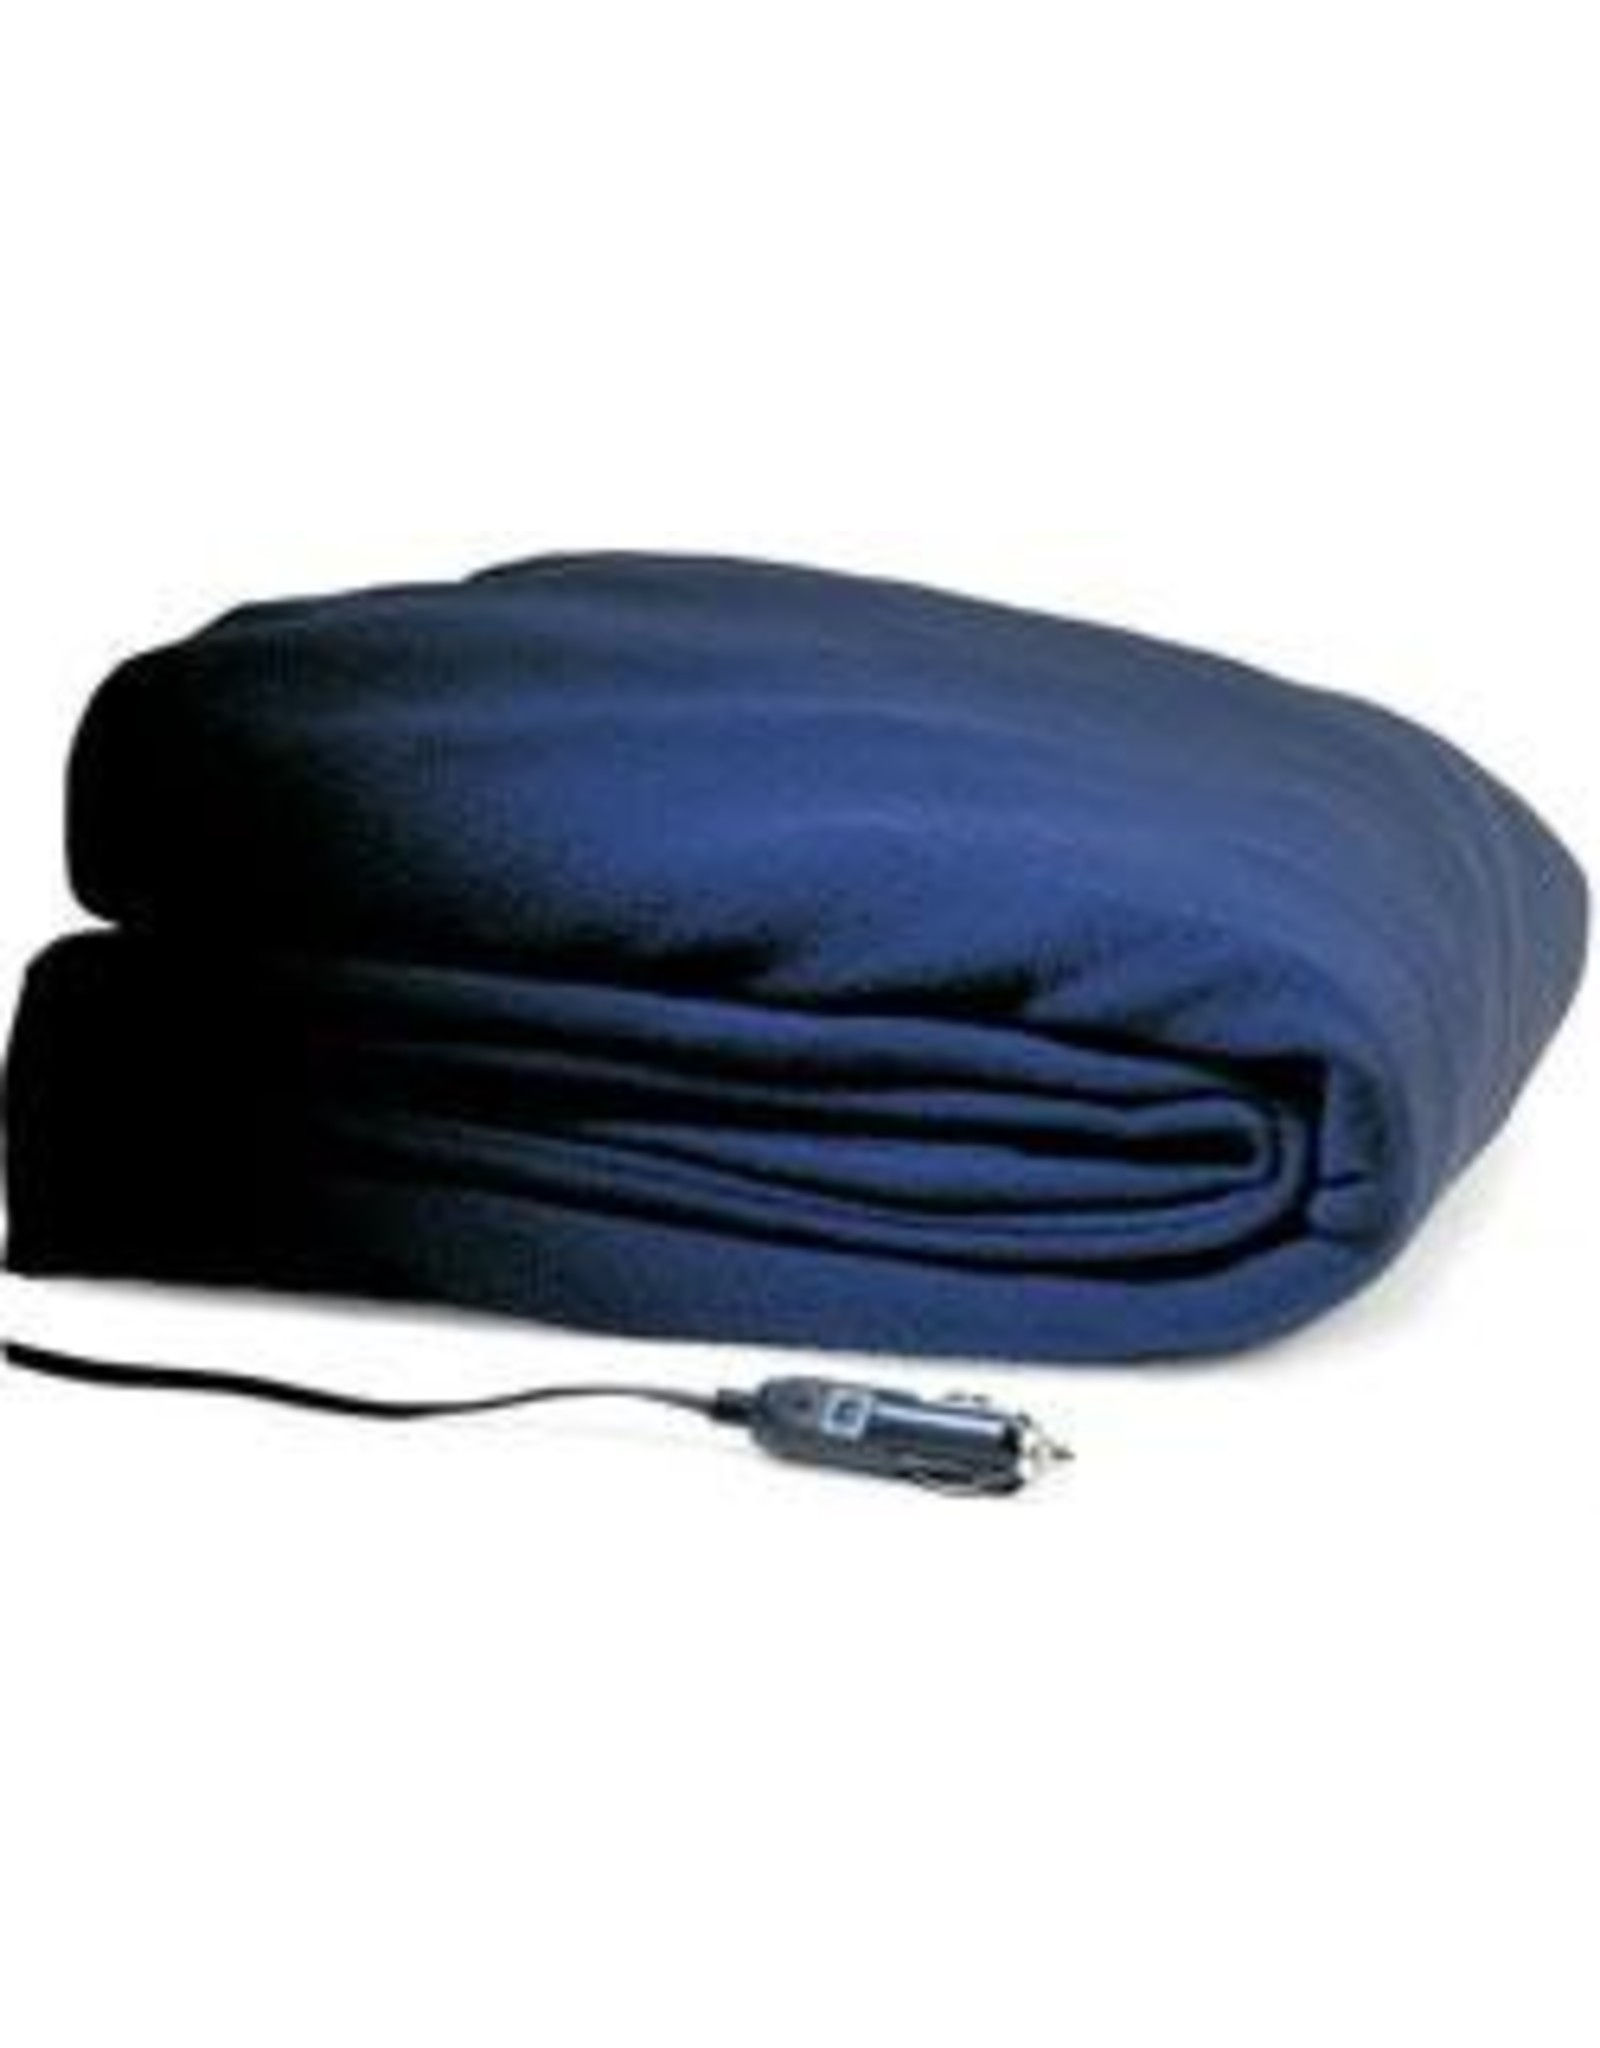 12-Volt Fleece Heated Blanket